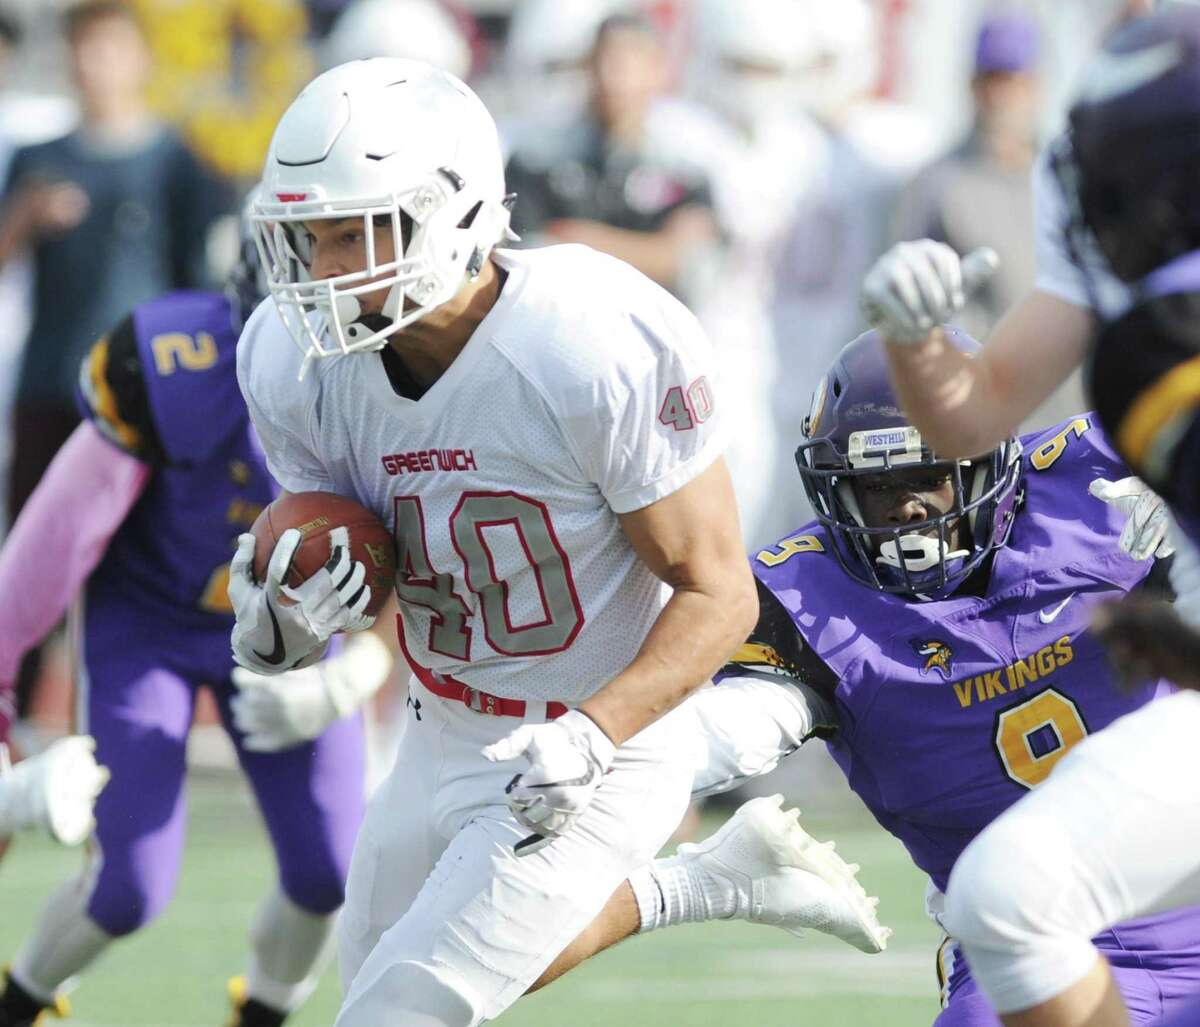 Greenwich's Tysen Comizio runs the ball against Westhill on Oct. 20.